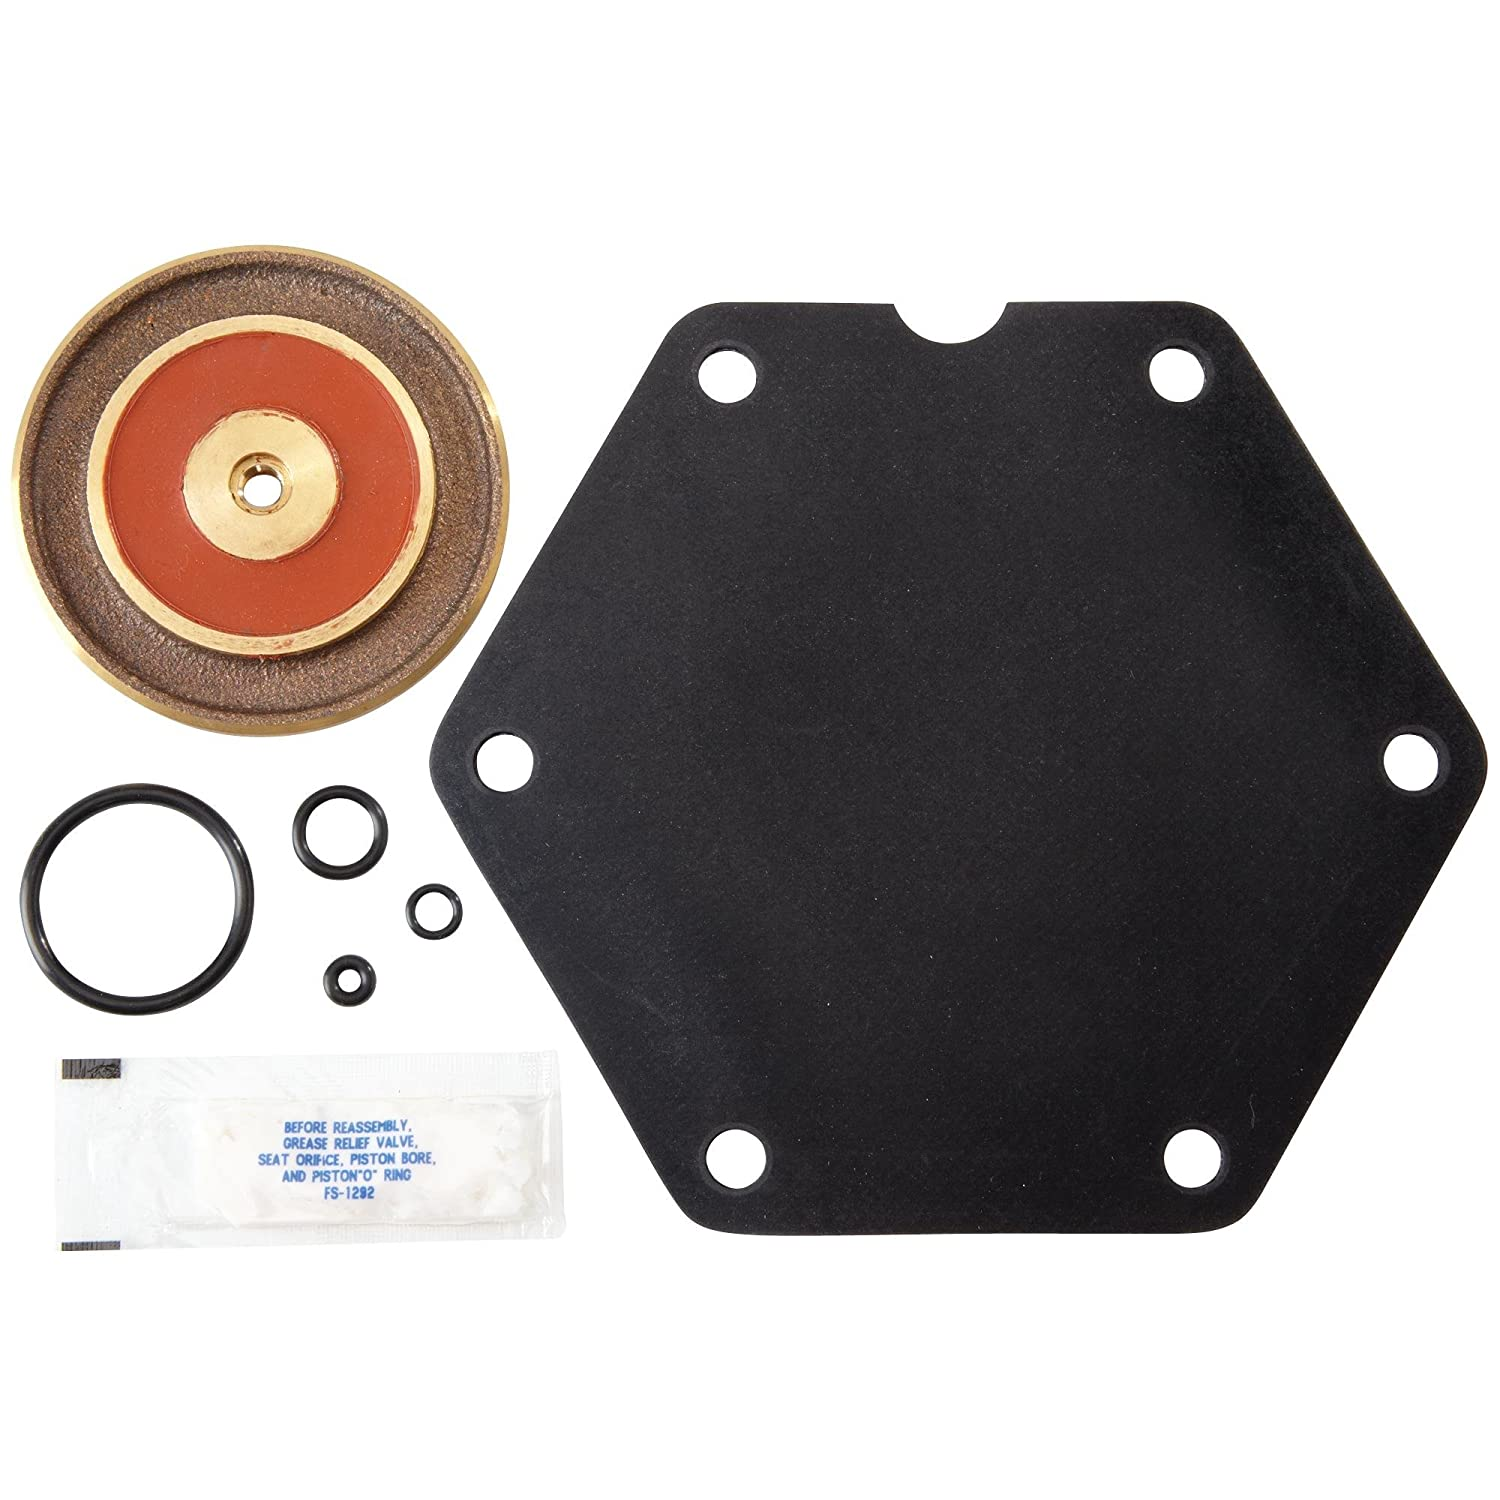 Relief Valve Rubber Parts Kit 1 1//4-2 for a 909M1 RP *Lead Free* Watts 0794062-794062